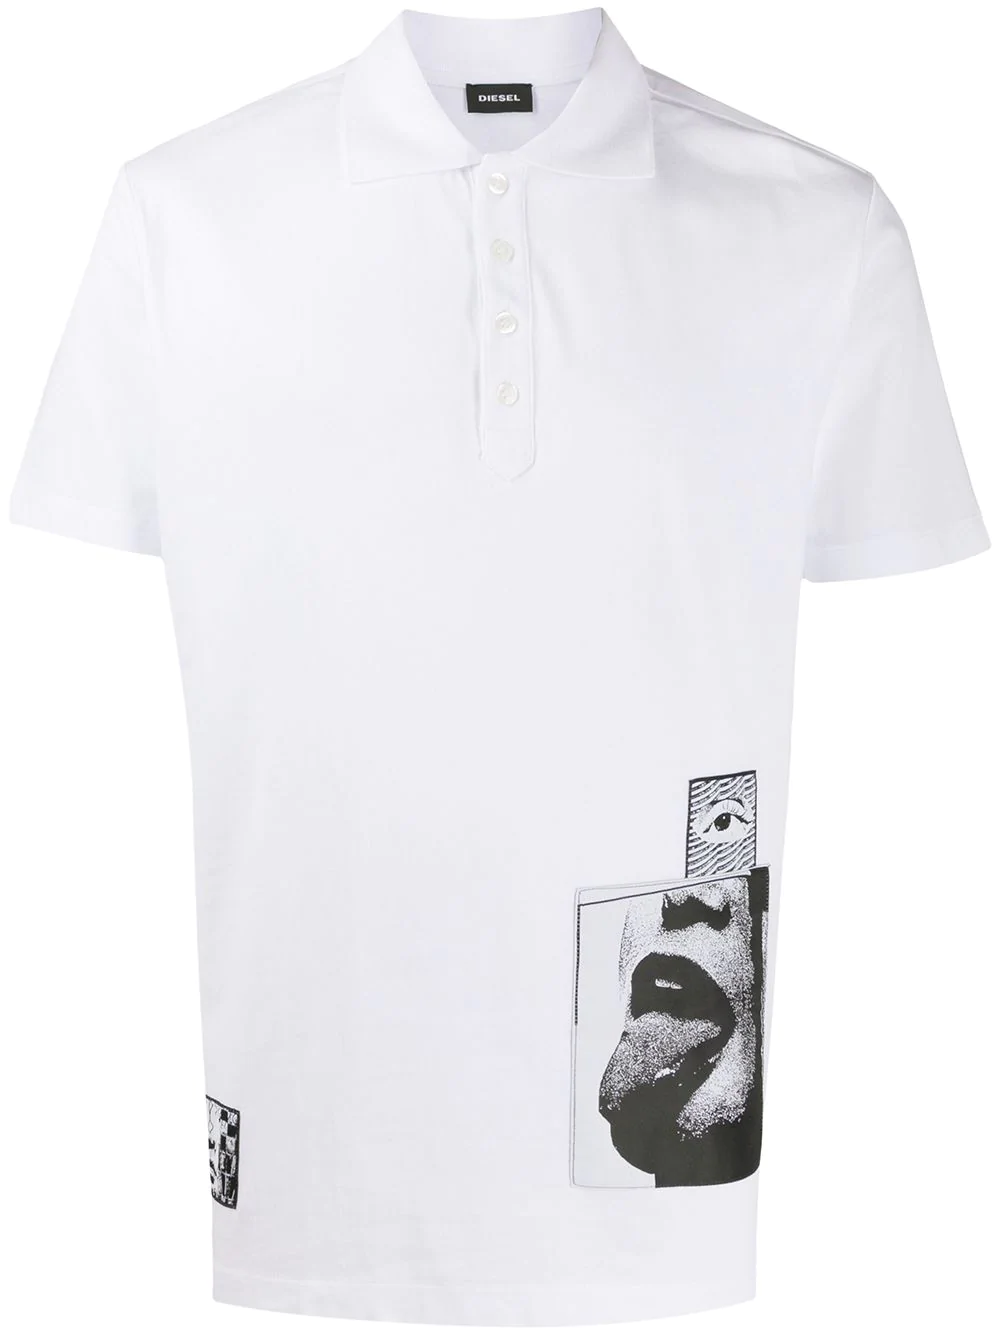 Diesel Jacquard Patch Shortsleeved Polo Shirt Farfetch Polo Shirt White Polo Shirt Polo